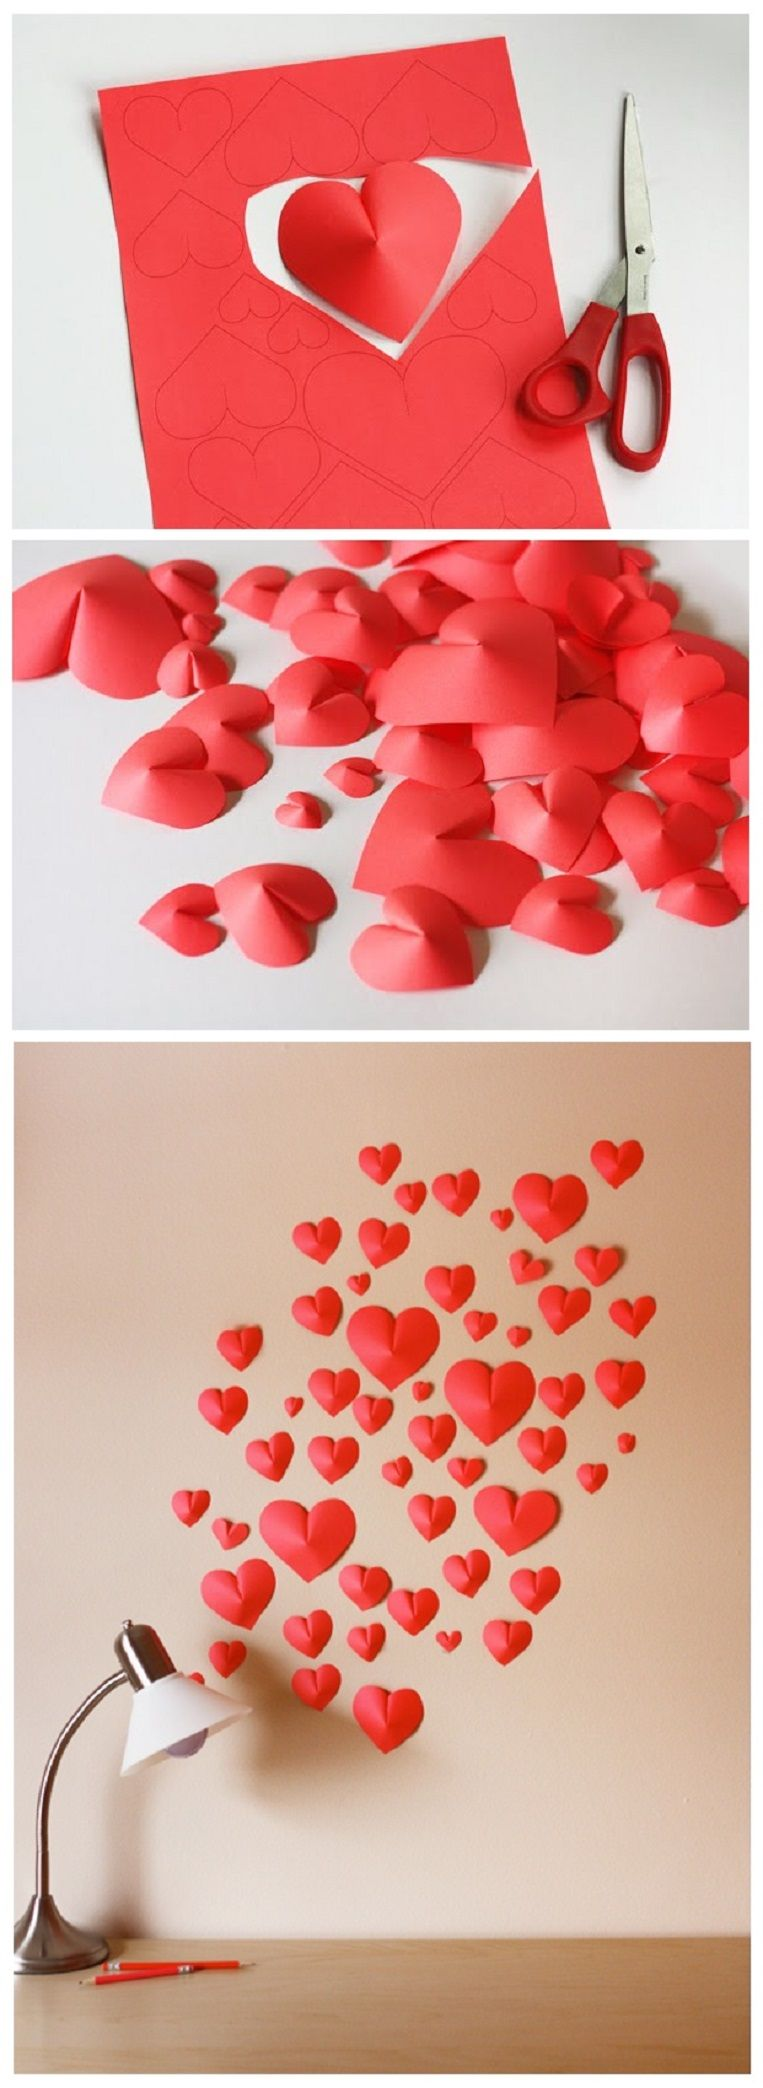 cool diy ideas for valentines day easy project tutorial for